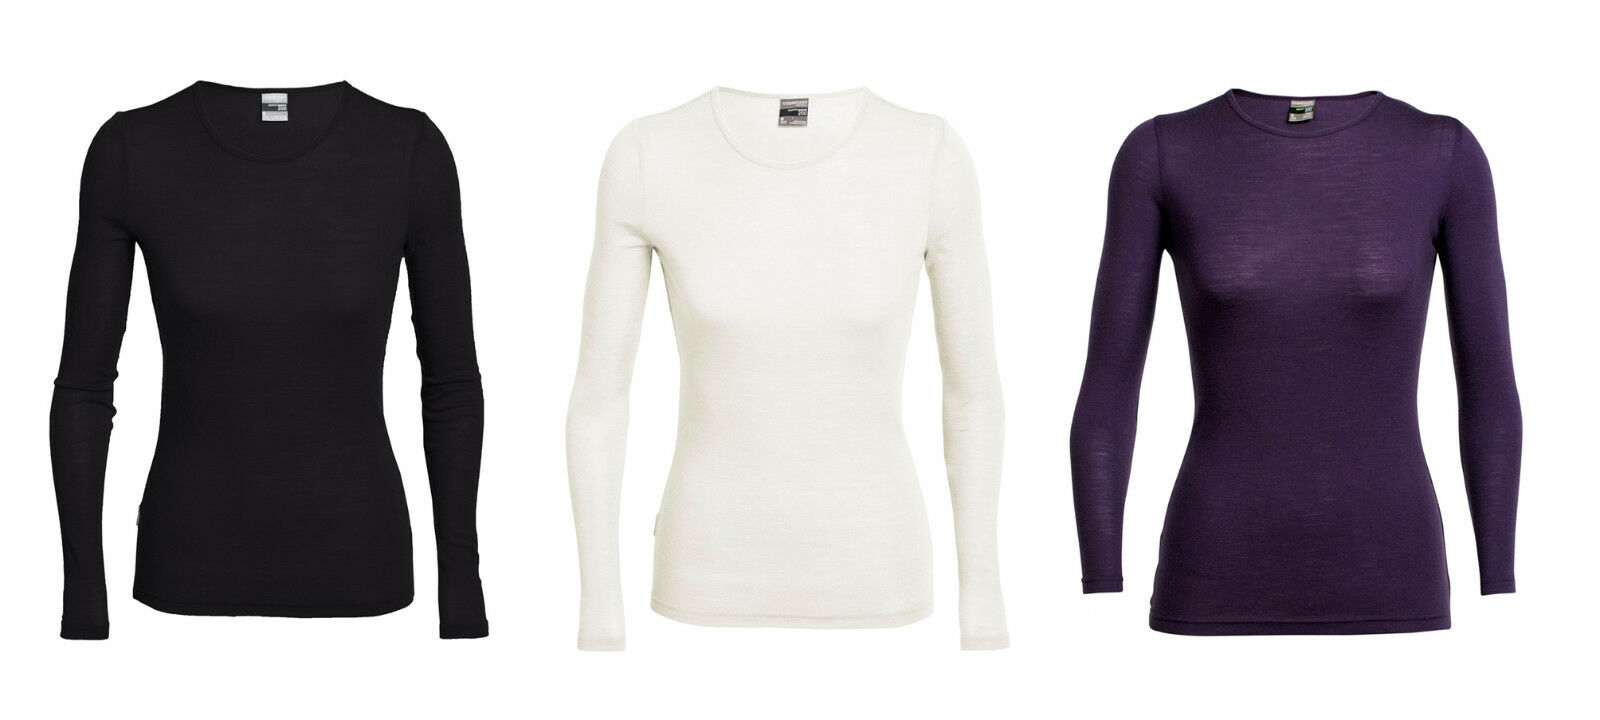 Icebreaker Everyday Ls Crewe 200g M ² - Sporty Breathable Womens